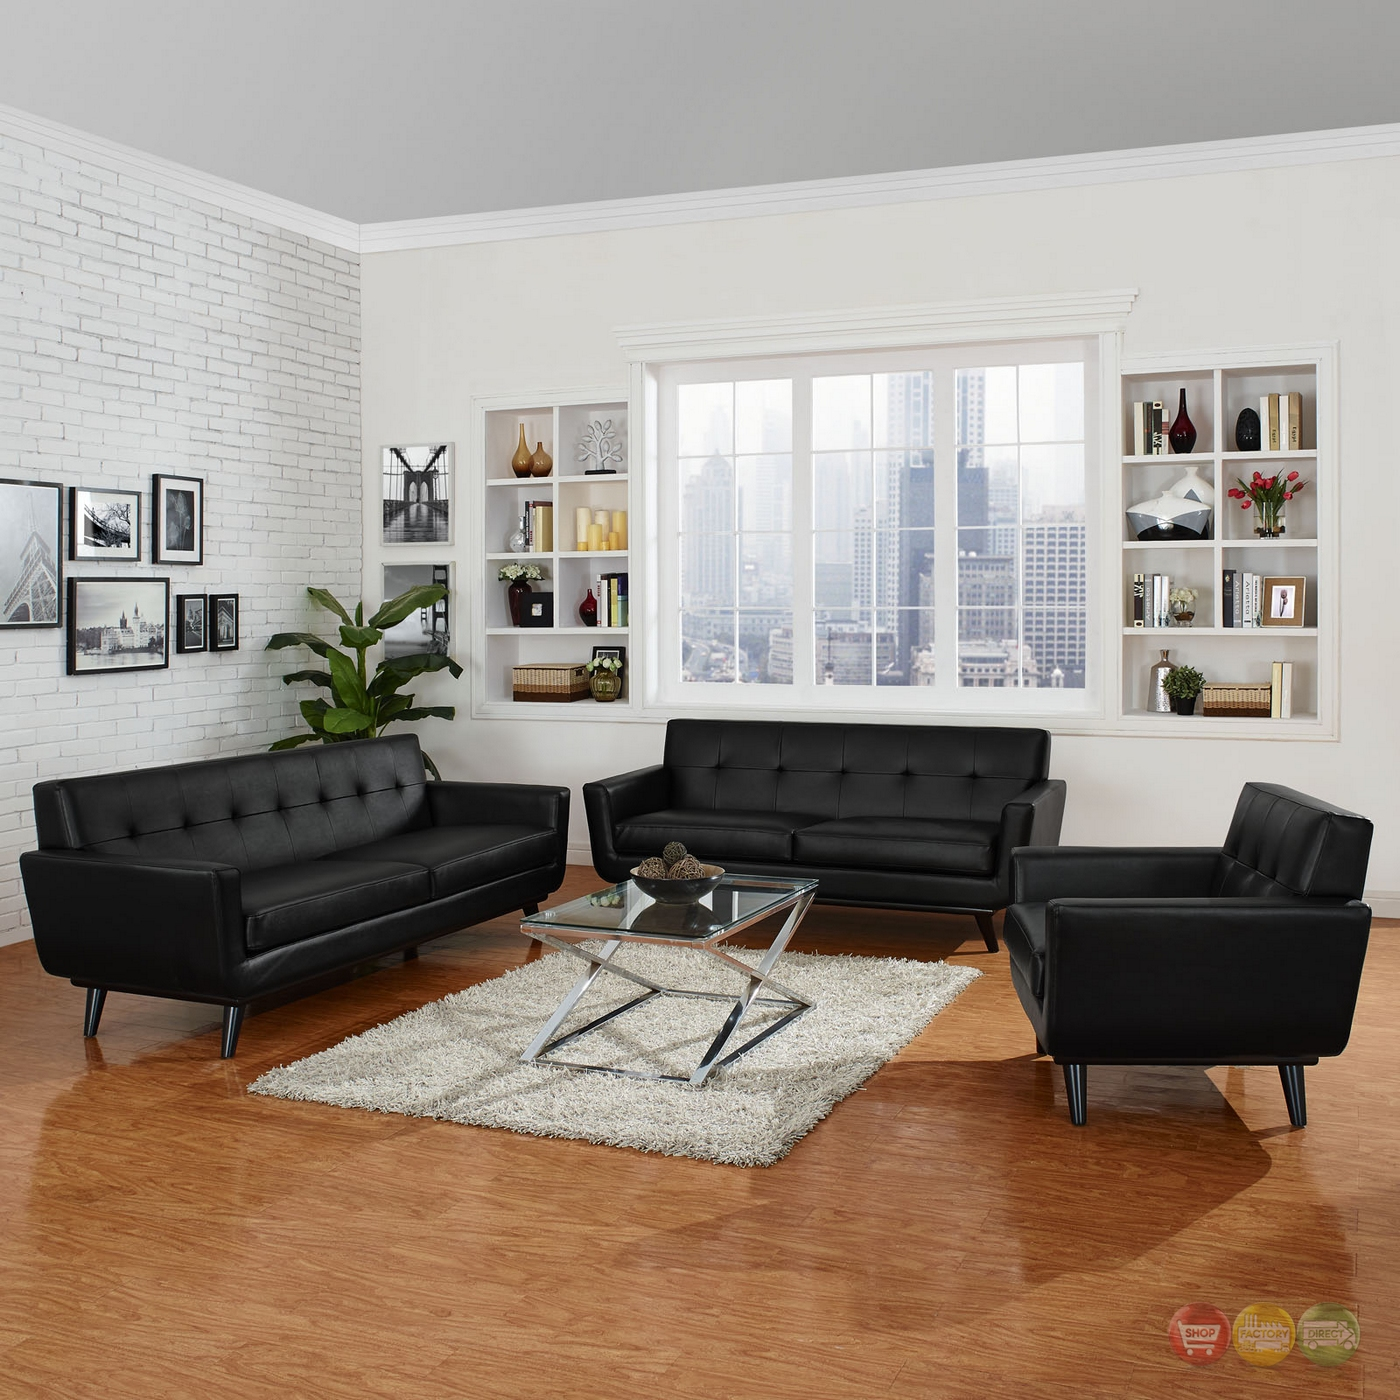 Living Room Modern Black: Mid-Century Modern Engage 3pc Button-Tufted Leather Living